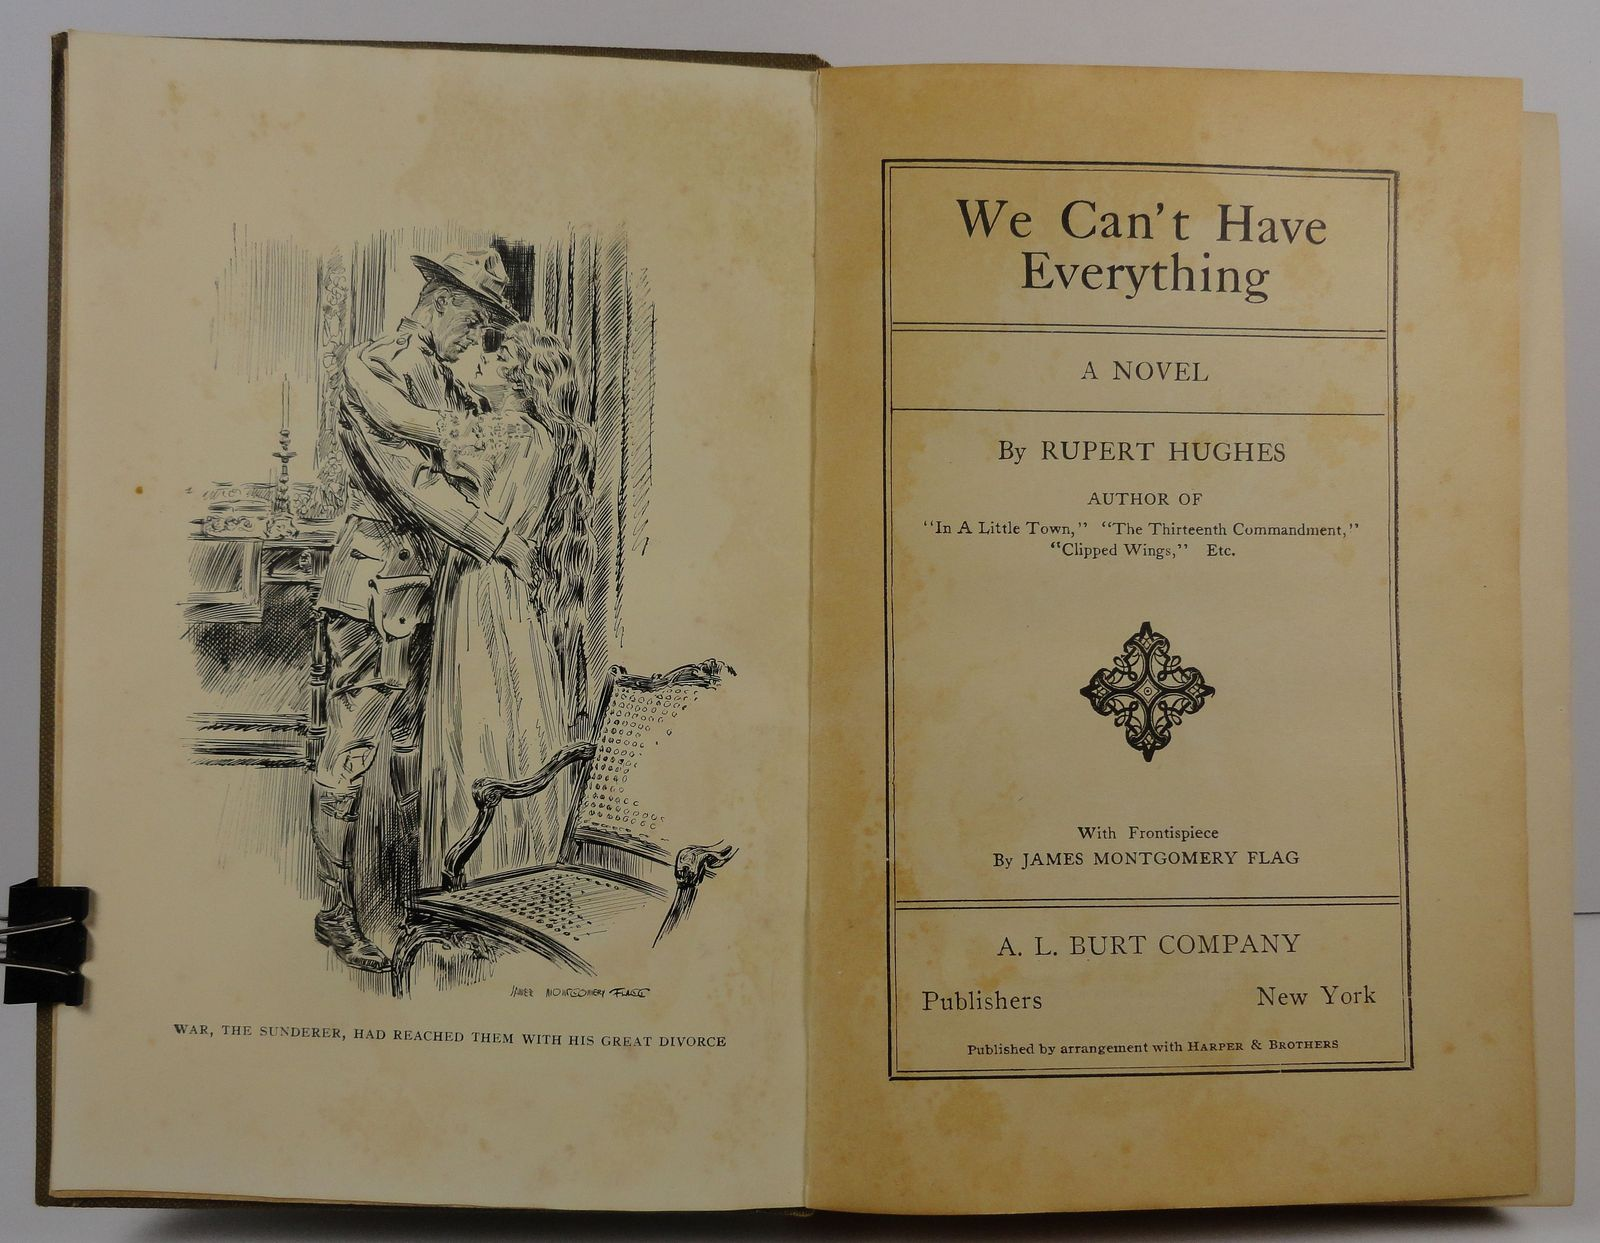 We Can't Have Everything by Rupert Hughes 1917